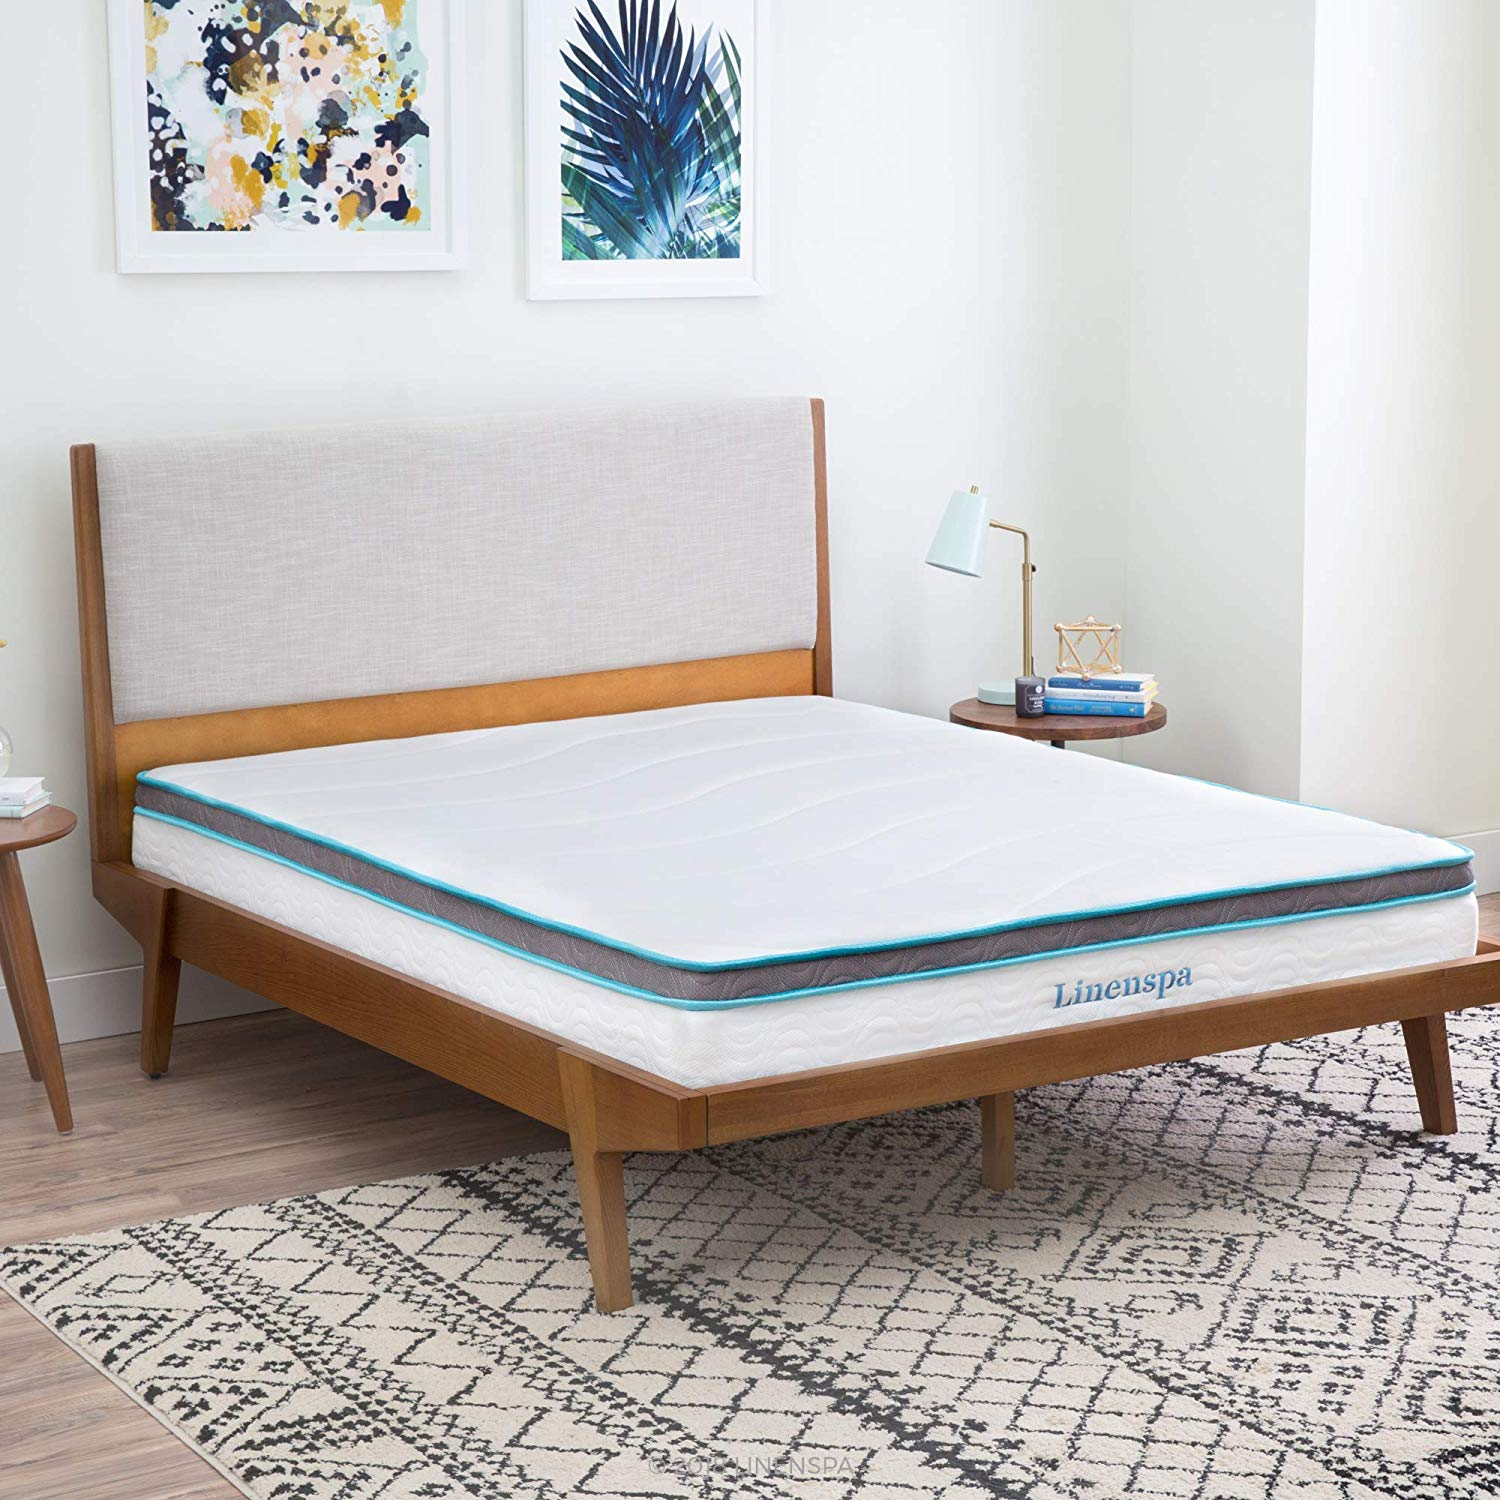 LINENSPA 8 Inch Memory Foam and Innerspring Hybrid Mattress - Twin Review